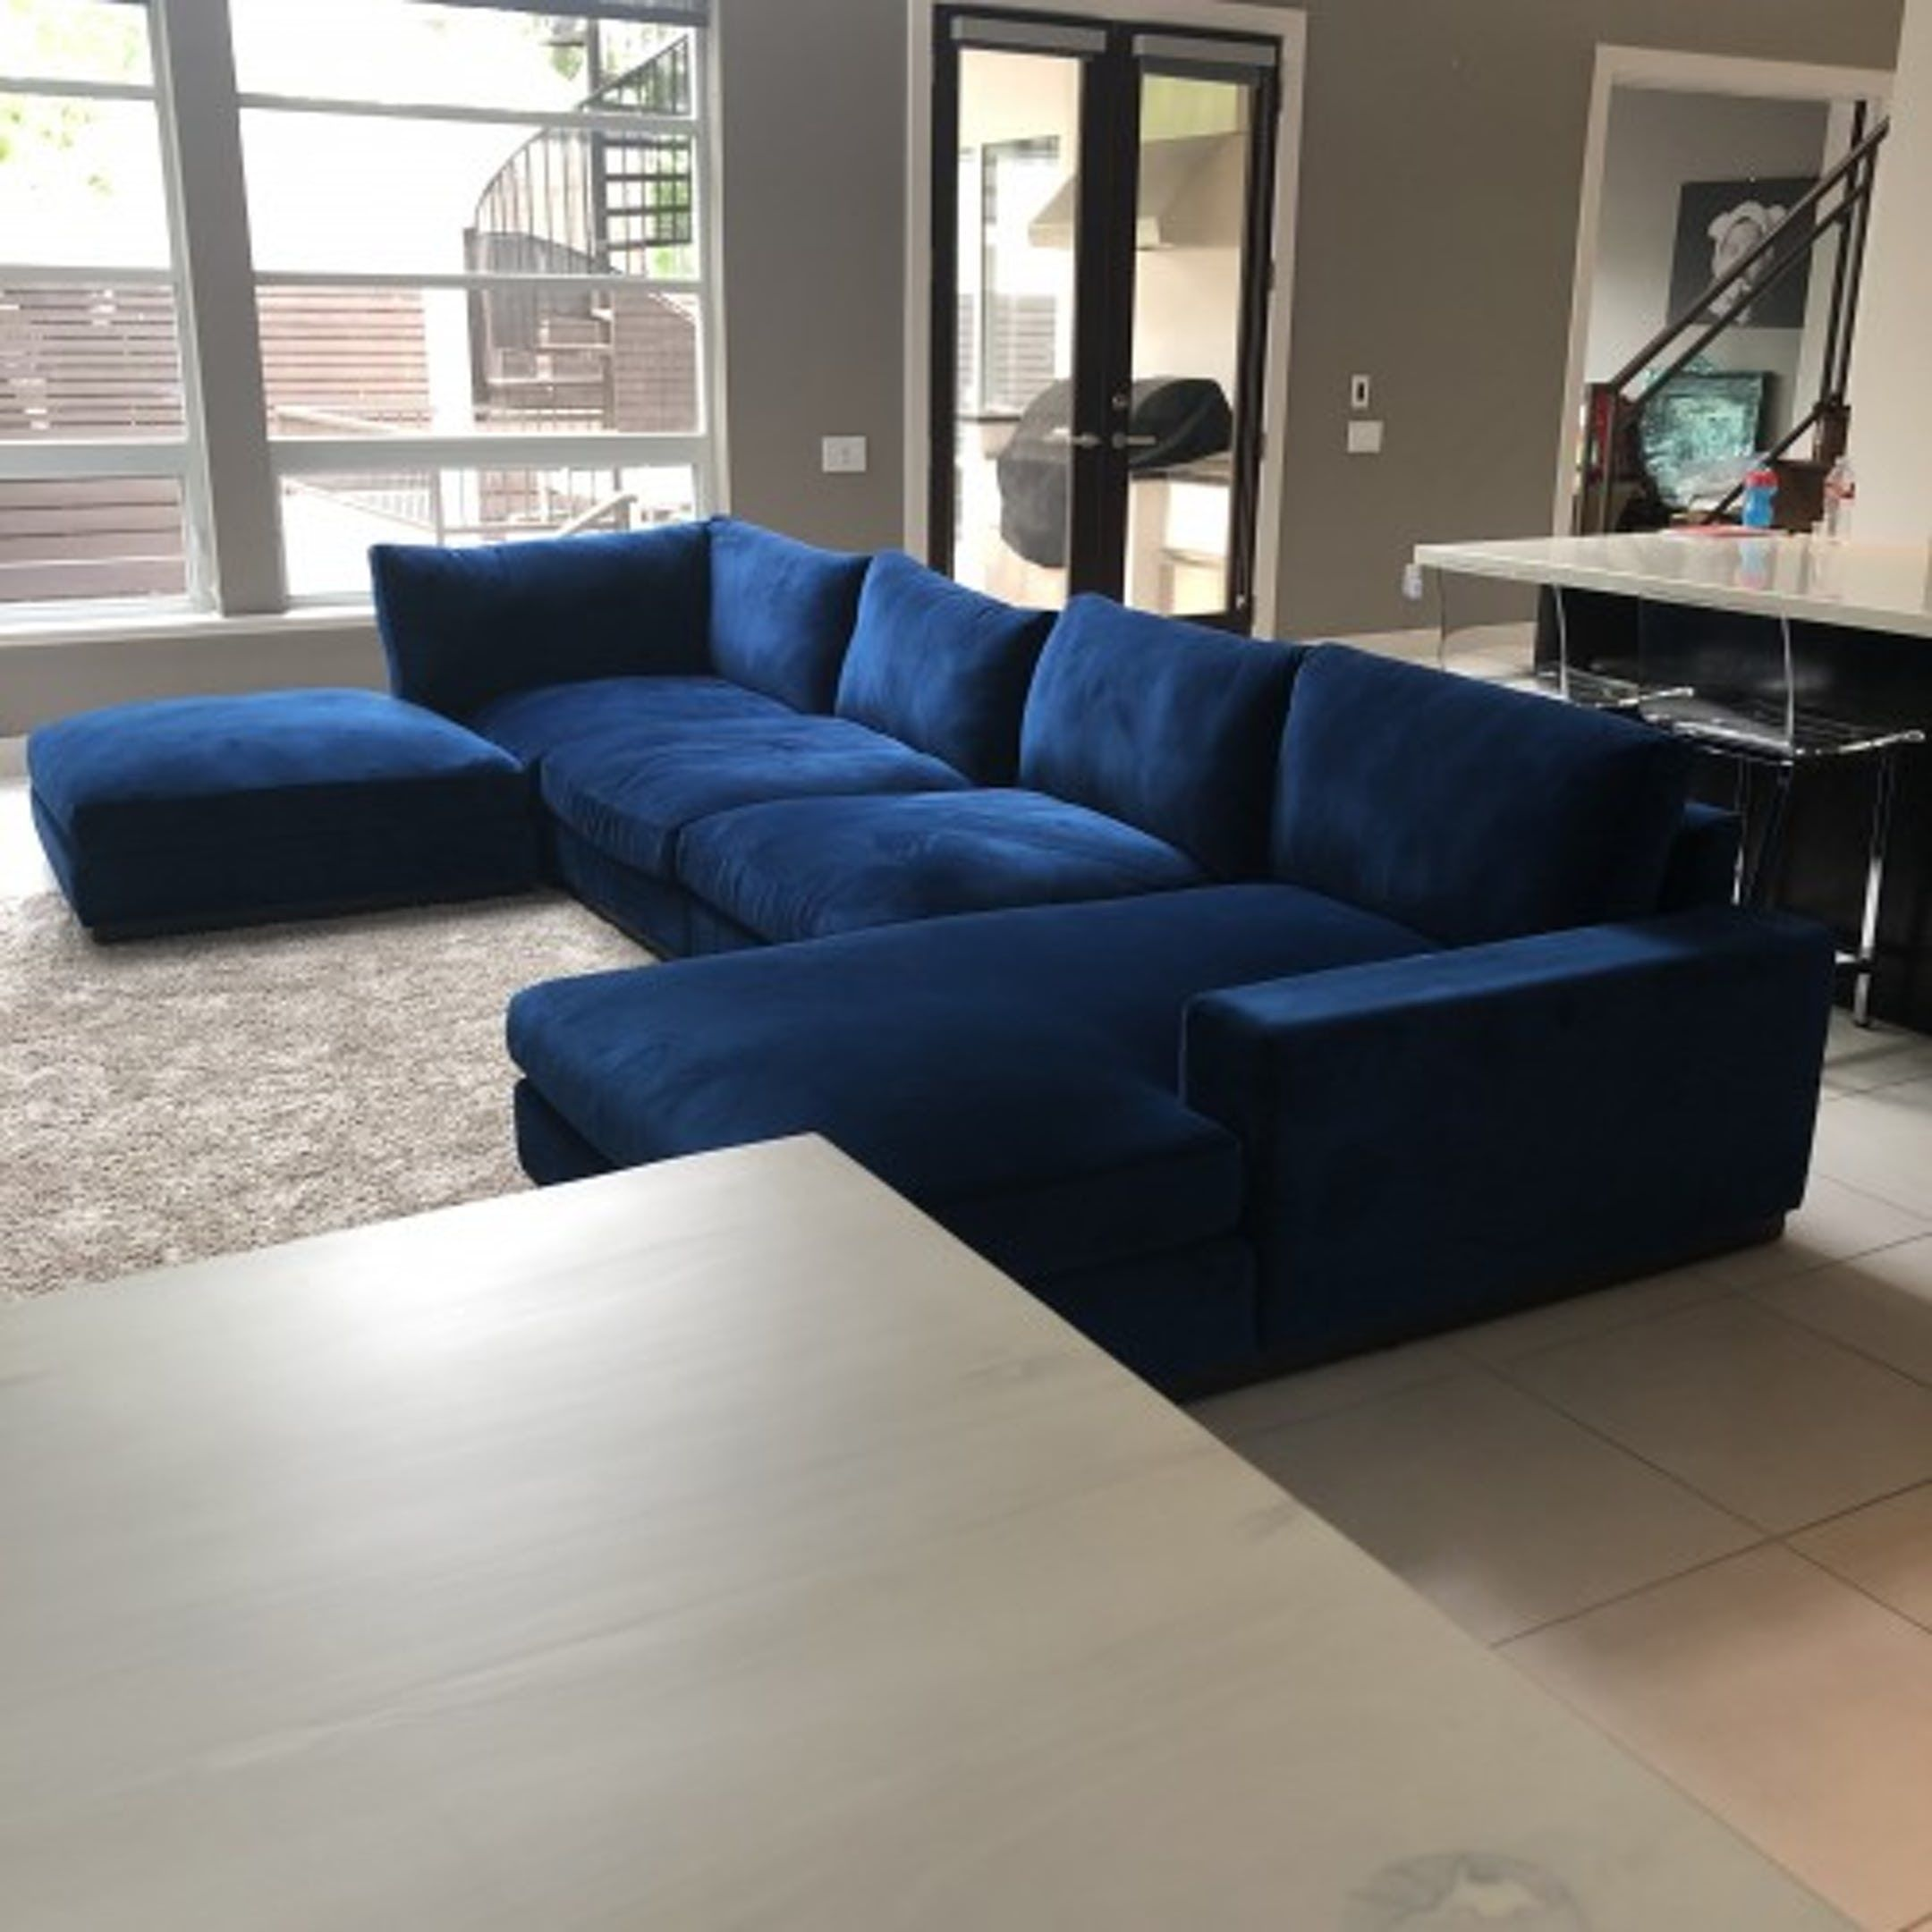 Pin On Apartment 20 #royal #blue #sectional #living #room